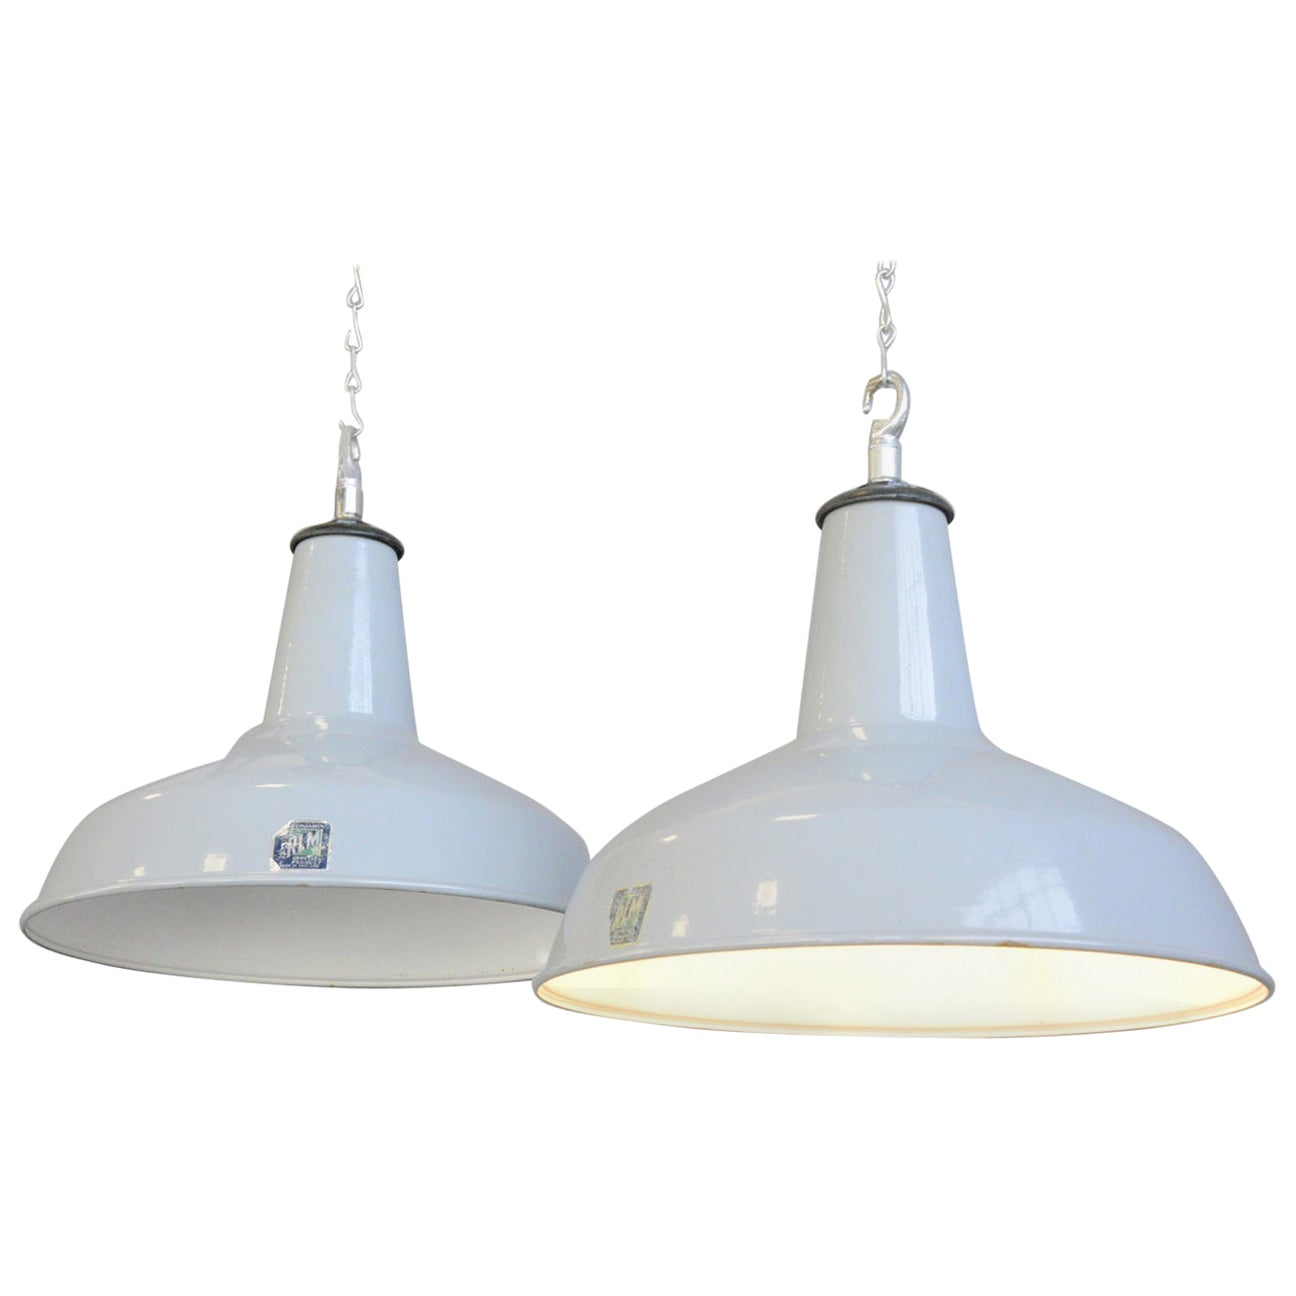 Large Grey Enamel Factory Lights by Benjamin, circa 1950s